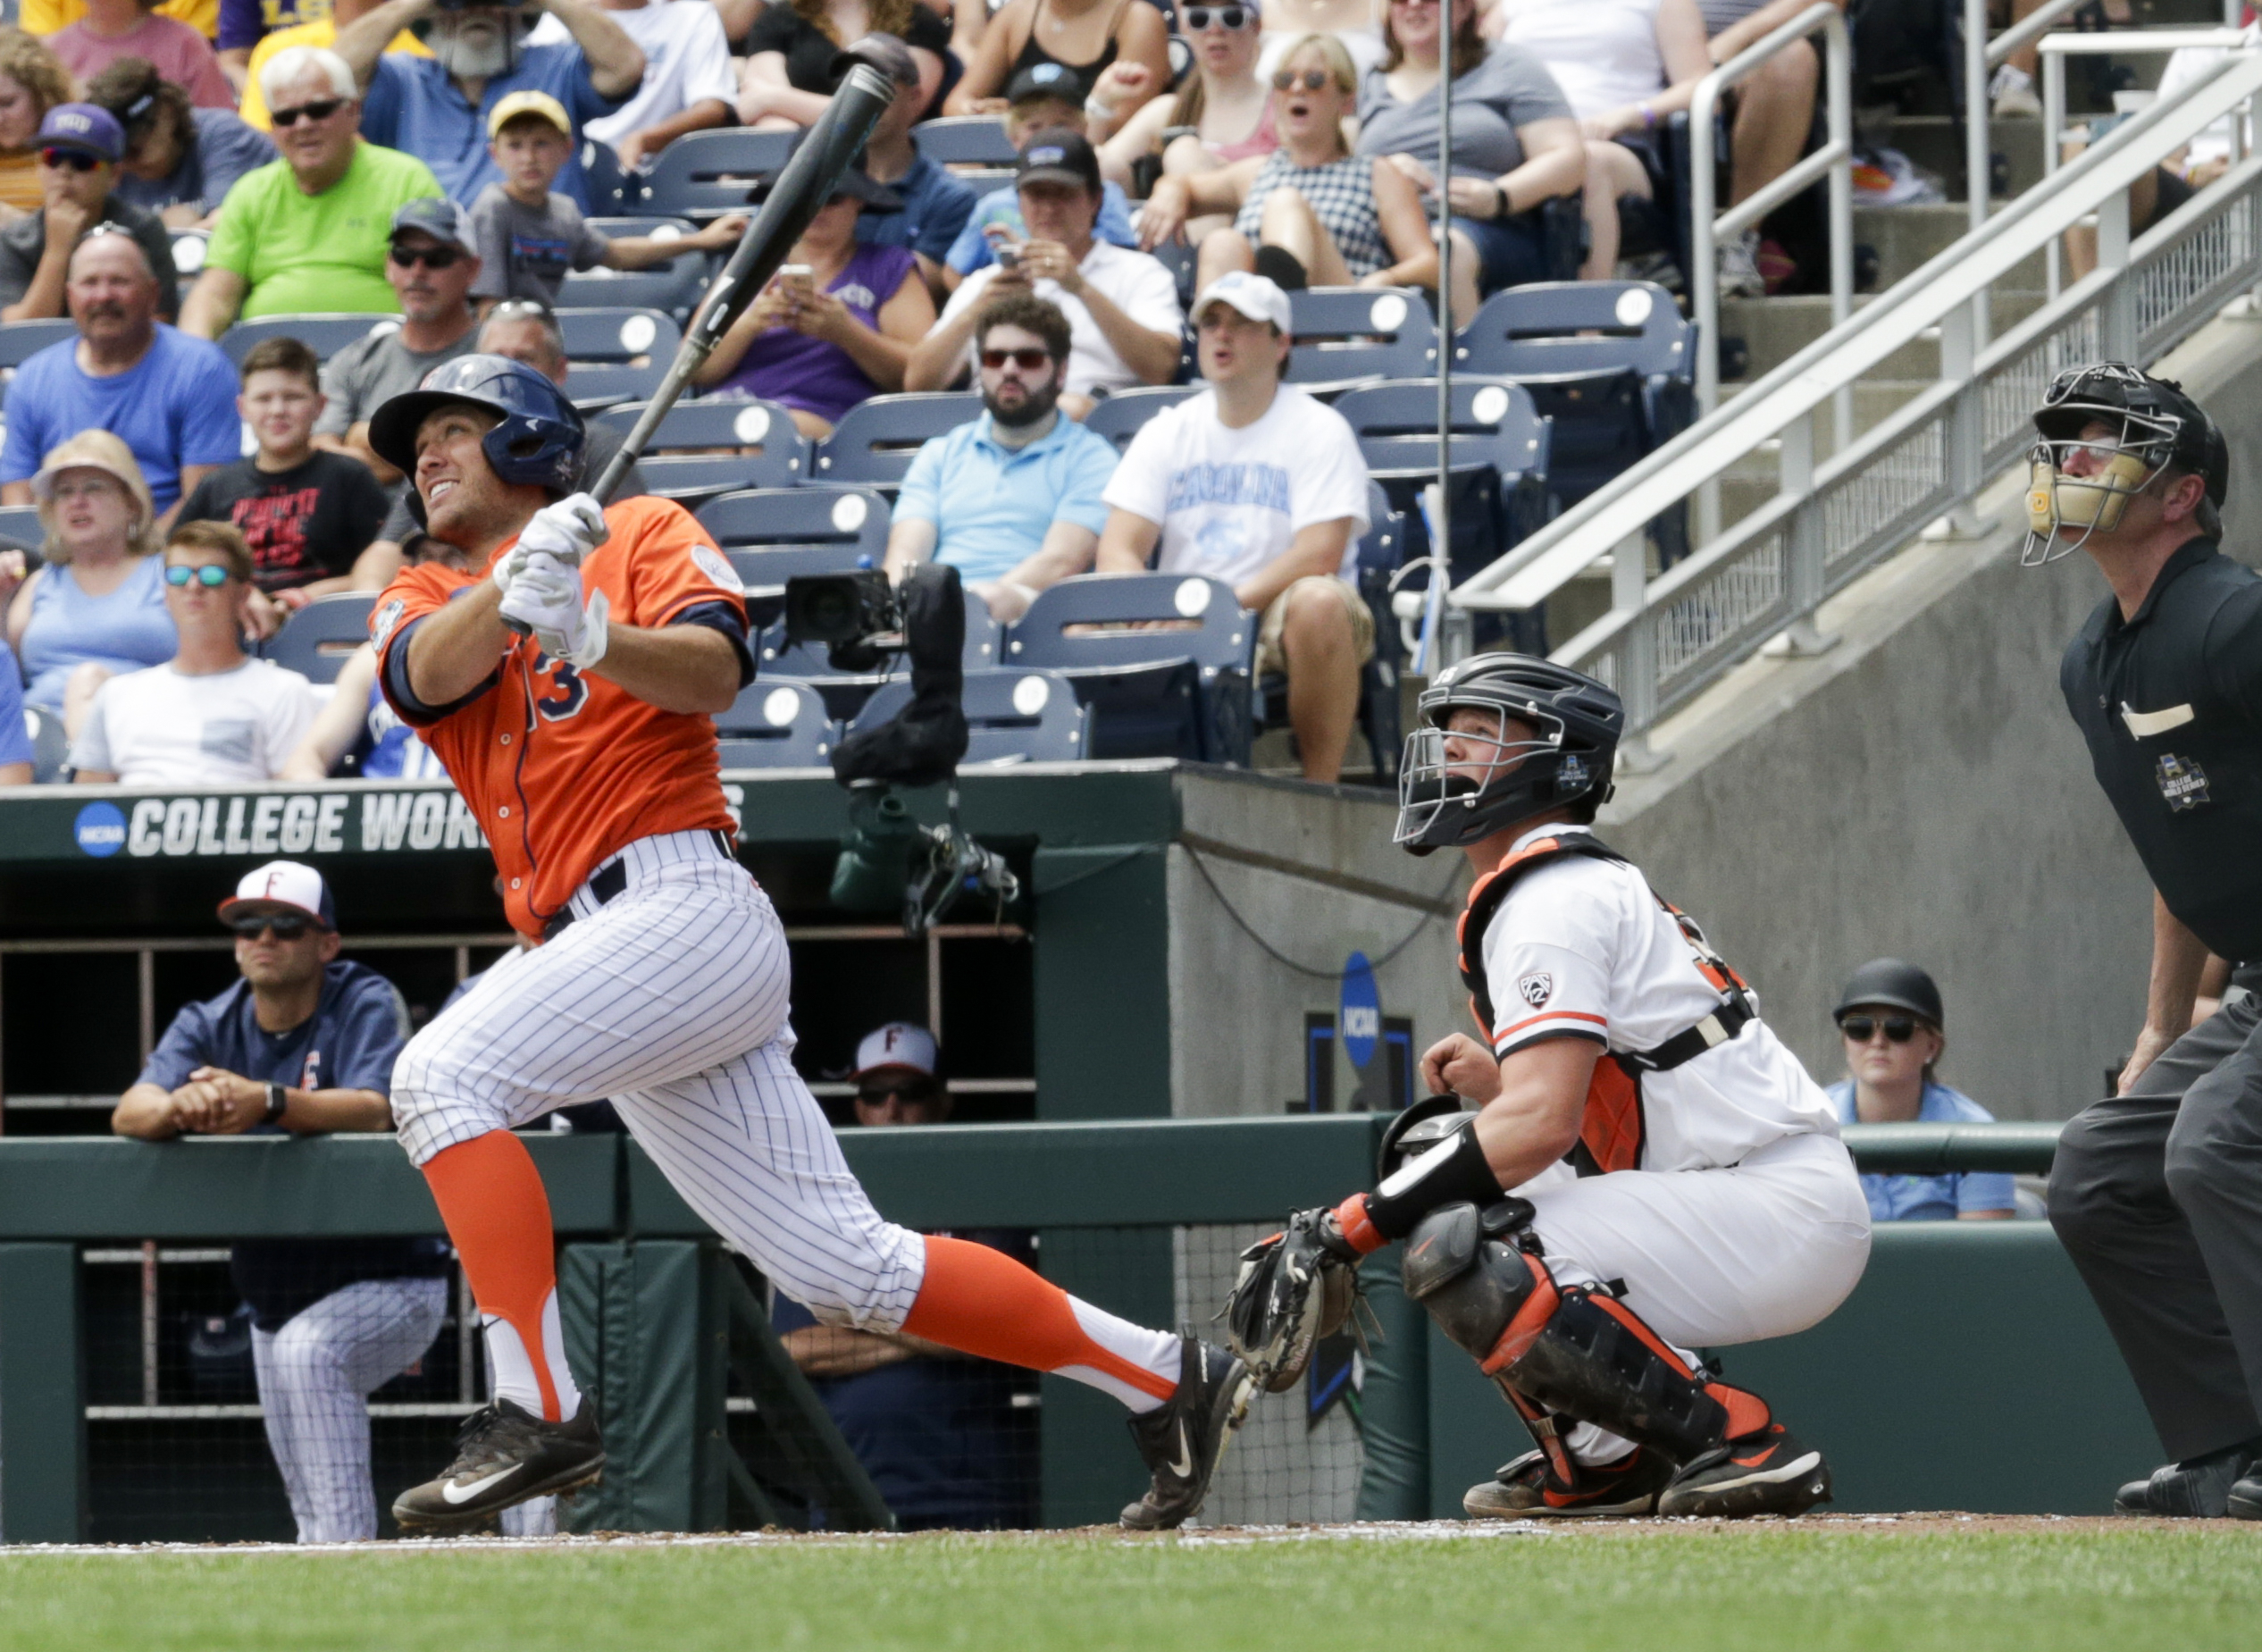 Cal State Fullerton's Timmy Richards (13) follows through on his three-run home run in the first inning of an NCAA mens College World Series baseball game against Cal State Fullerton in Omaha, Neb., Saturday, June 17, 2017. At right is Oregon State catcher Adley Rutschman. (AP Photo/Nati Harnik)